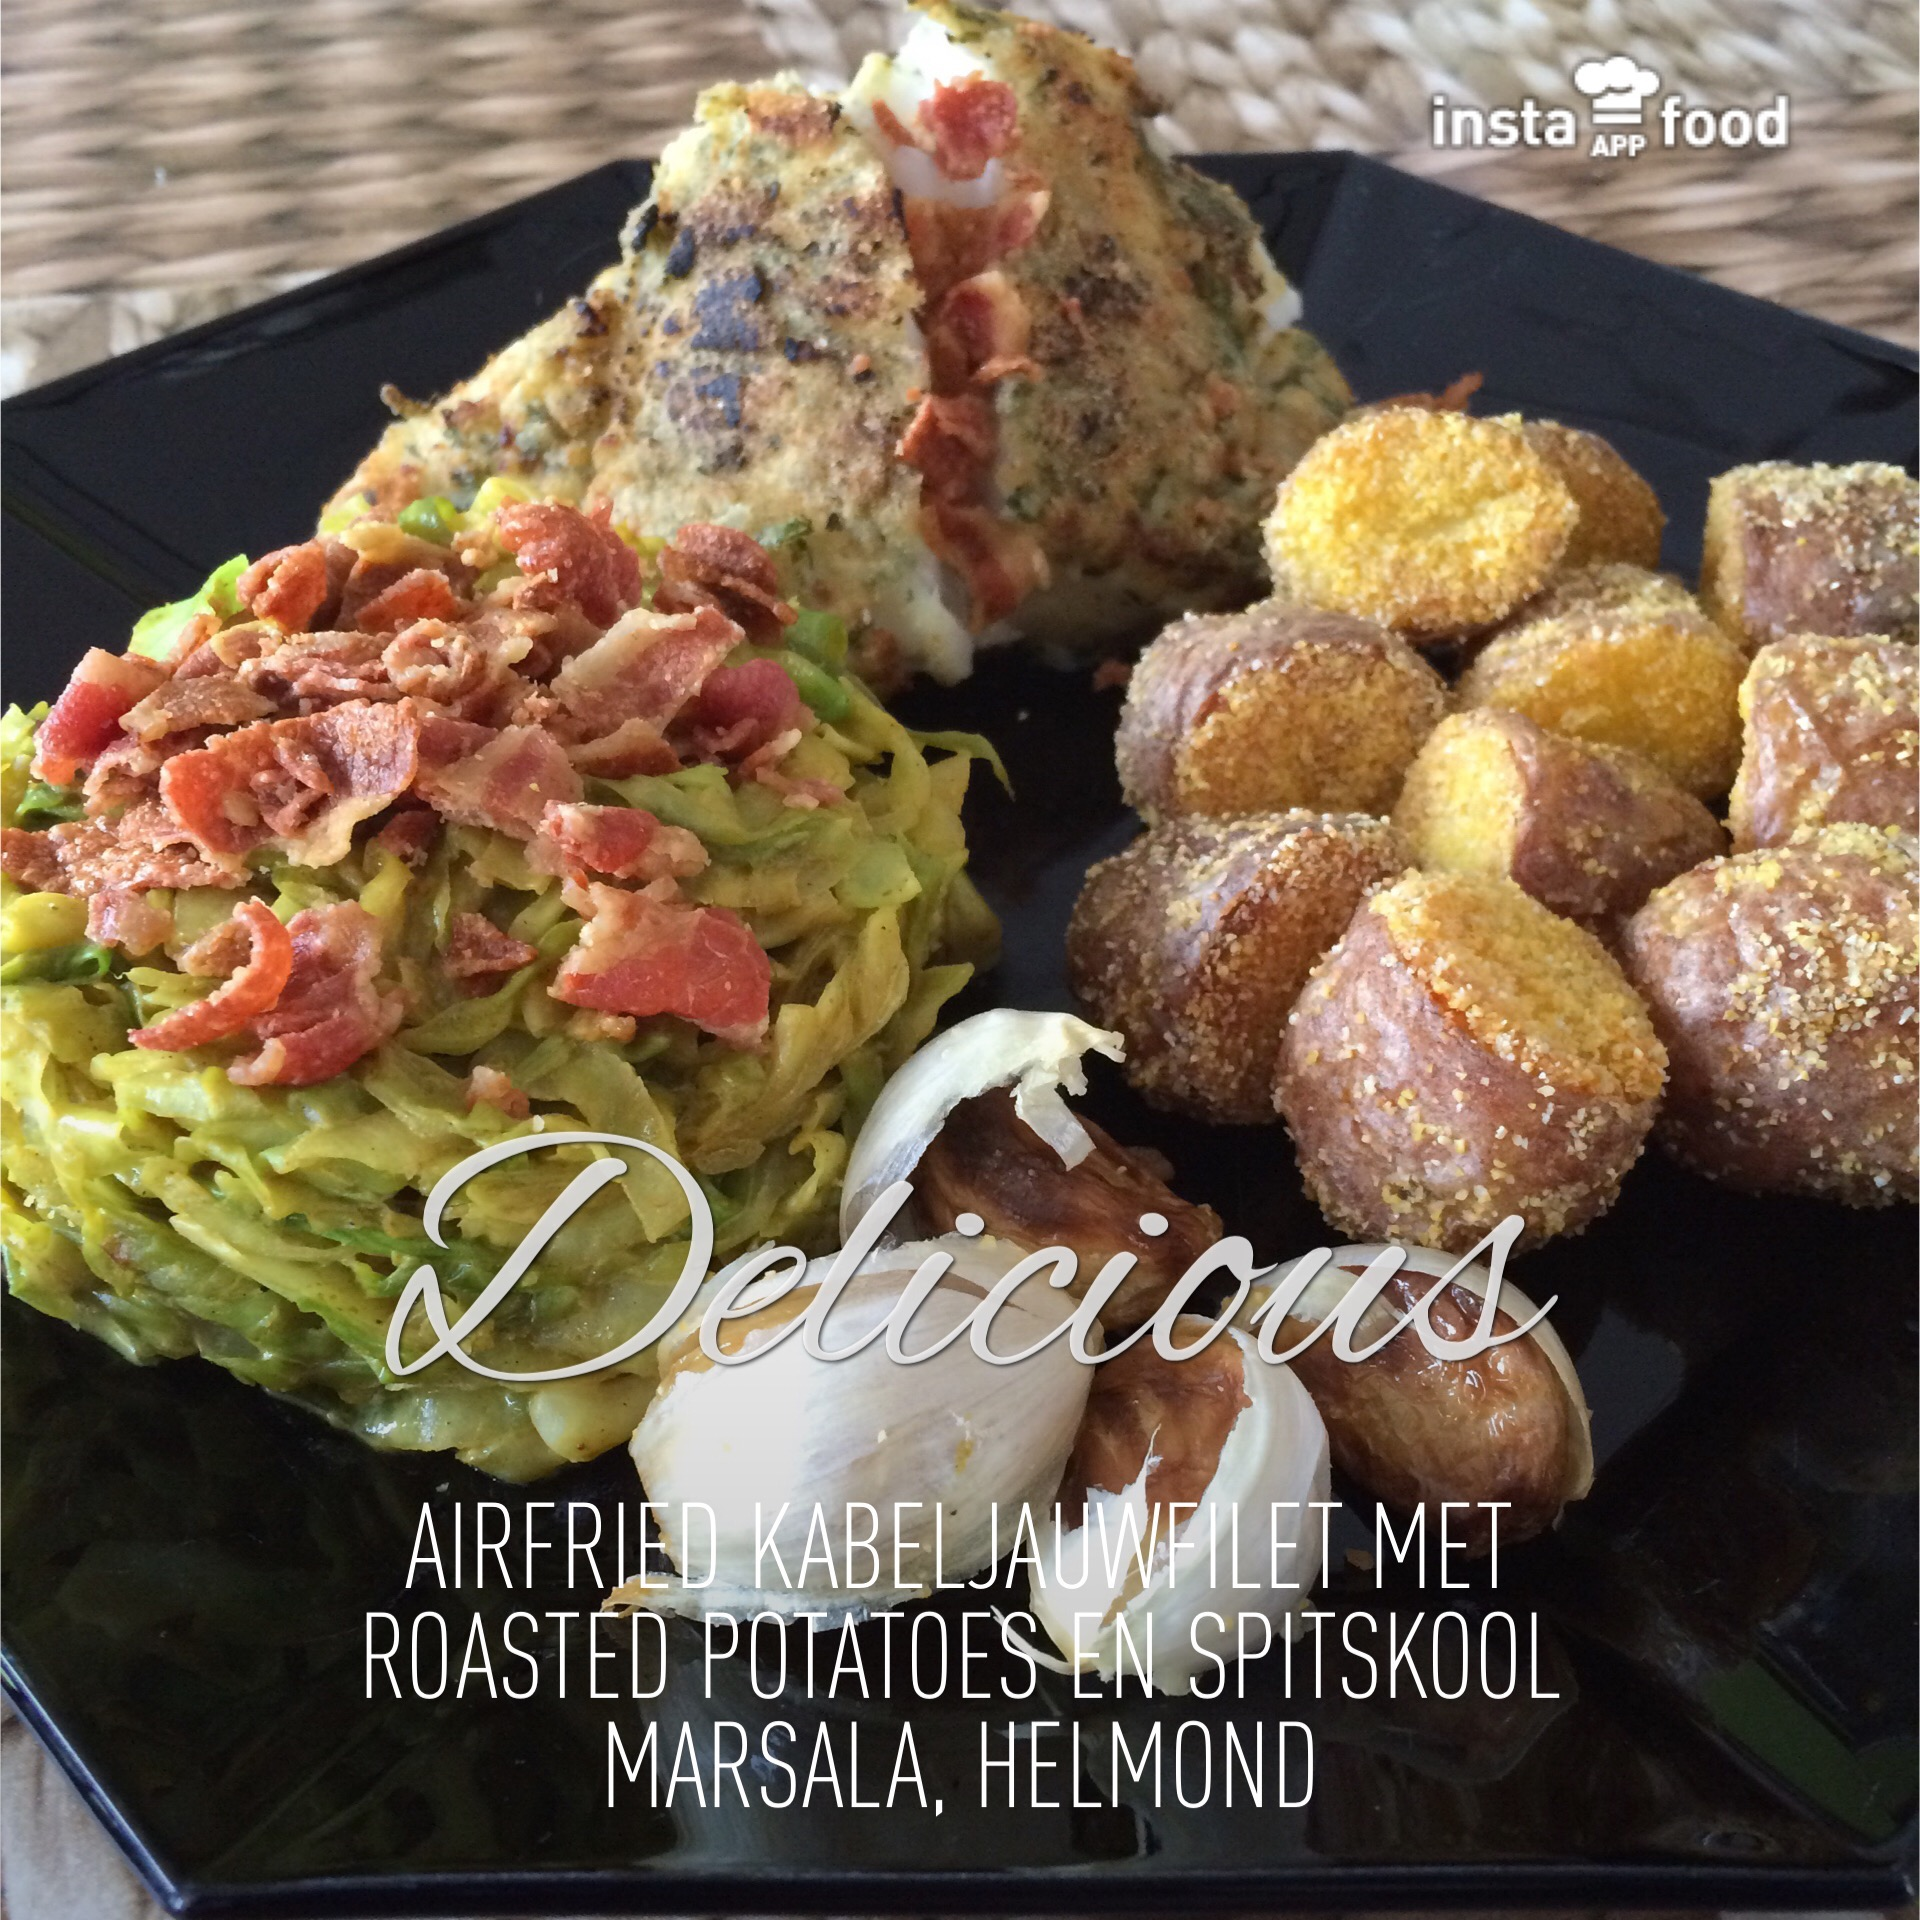 Airfried Kabeljauwfilet met crispy roasted potatoes en spitskool marsala